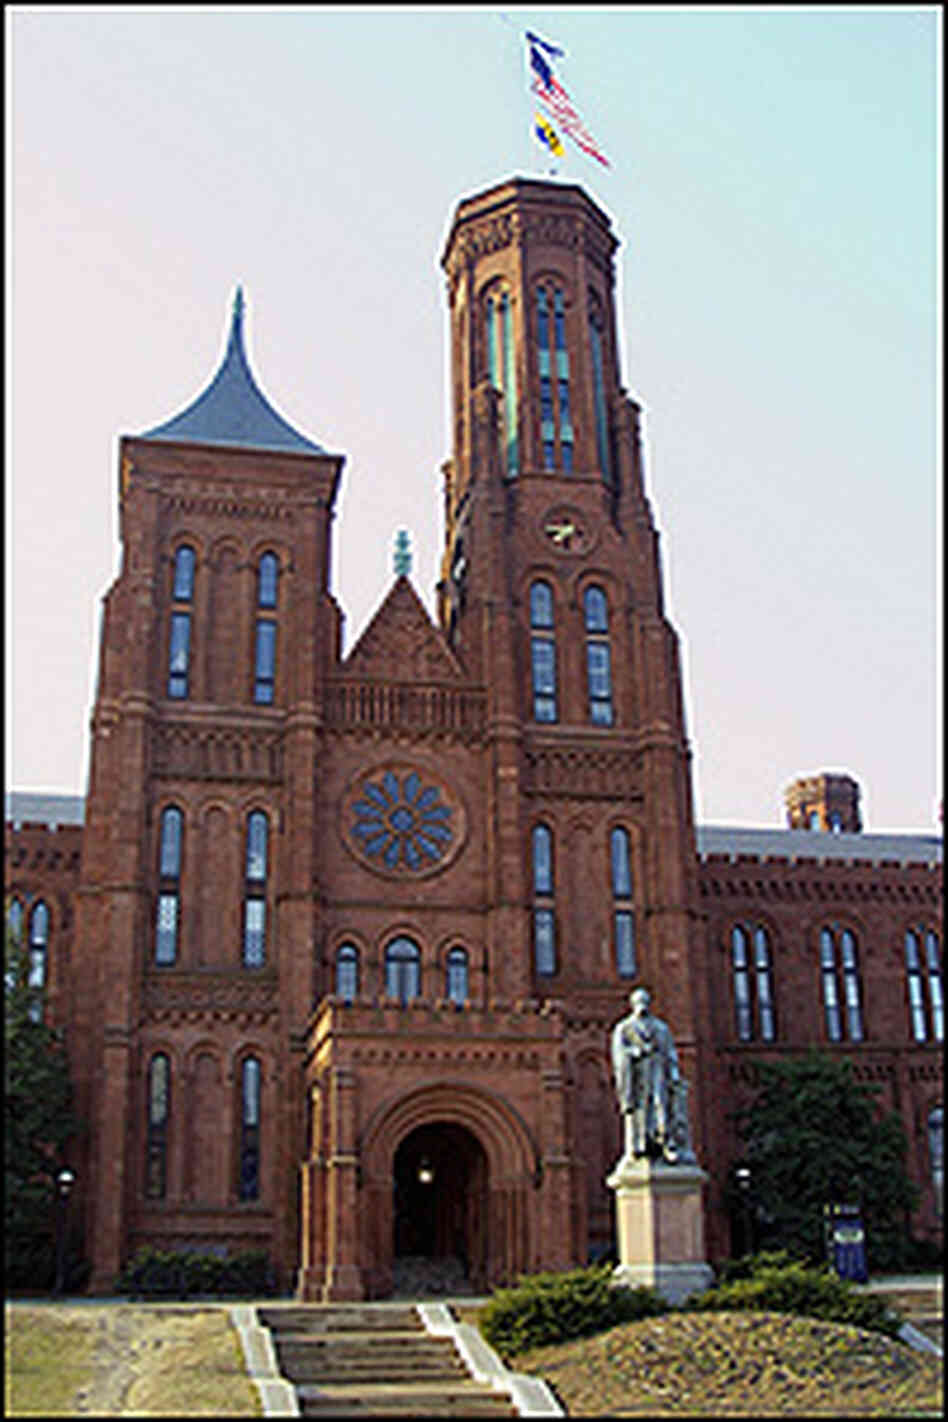 The Smithsonian's first building, popularly known as the Castle.